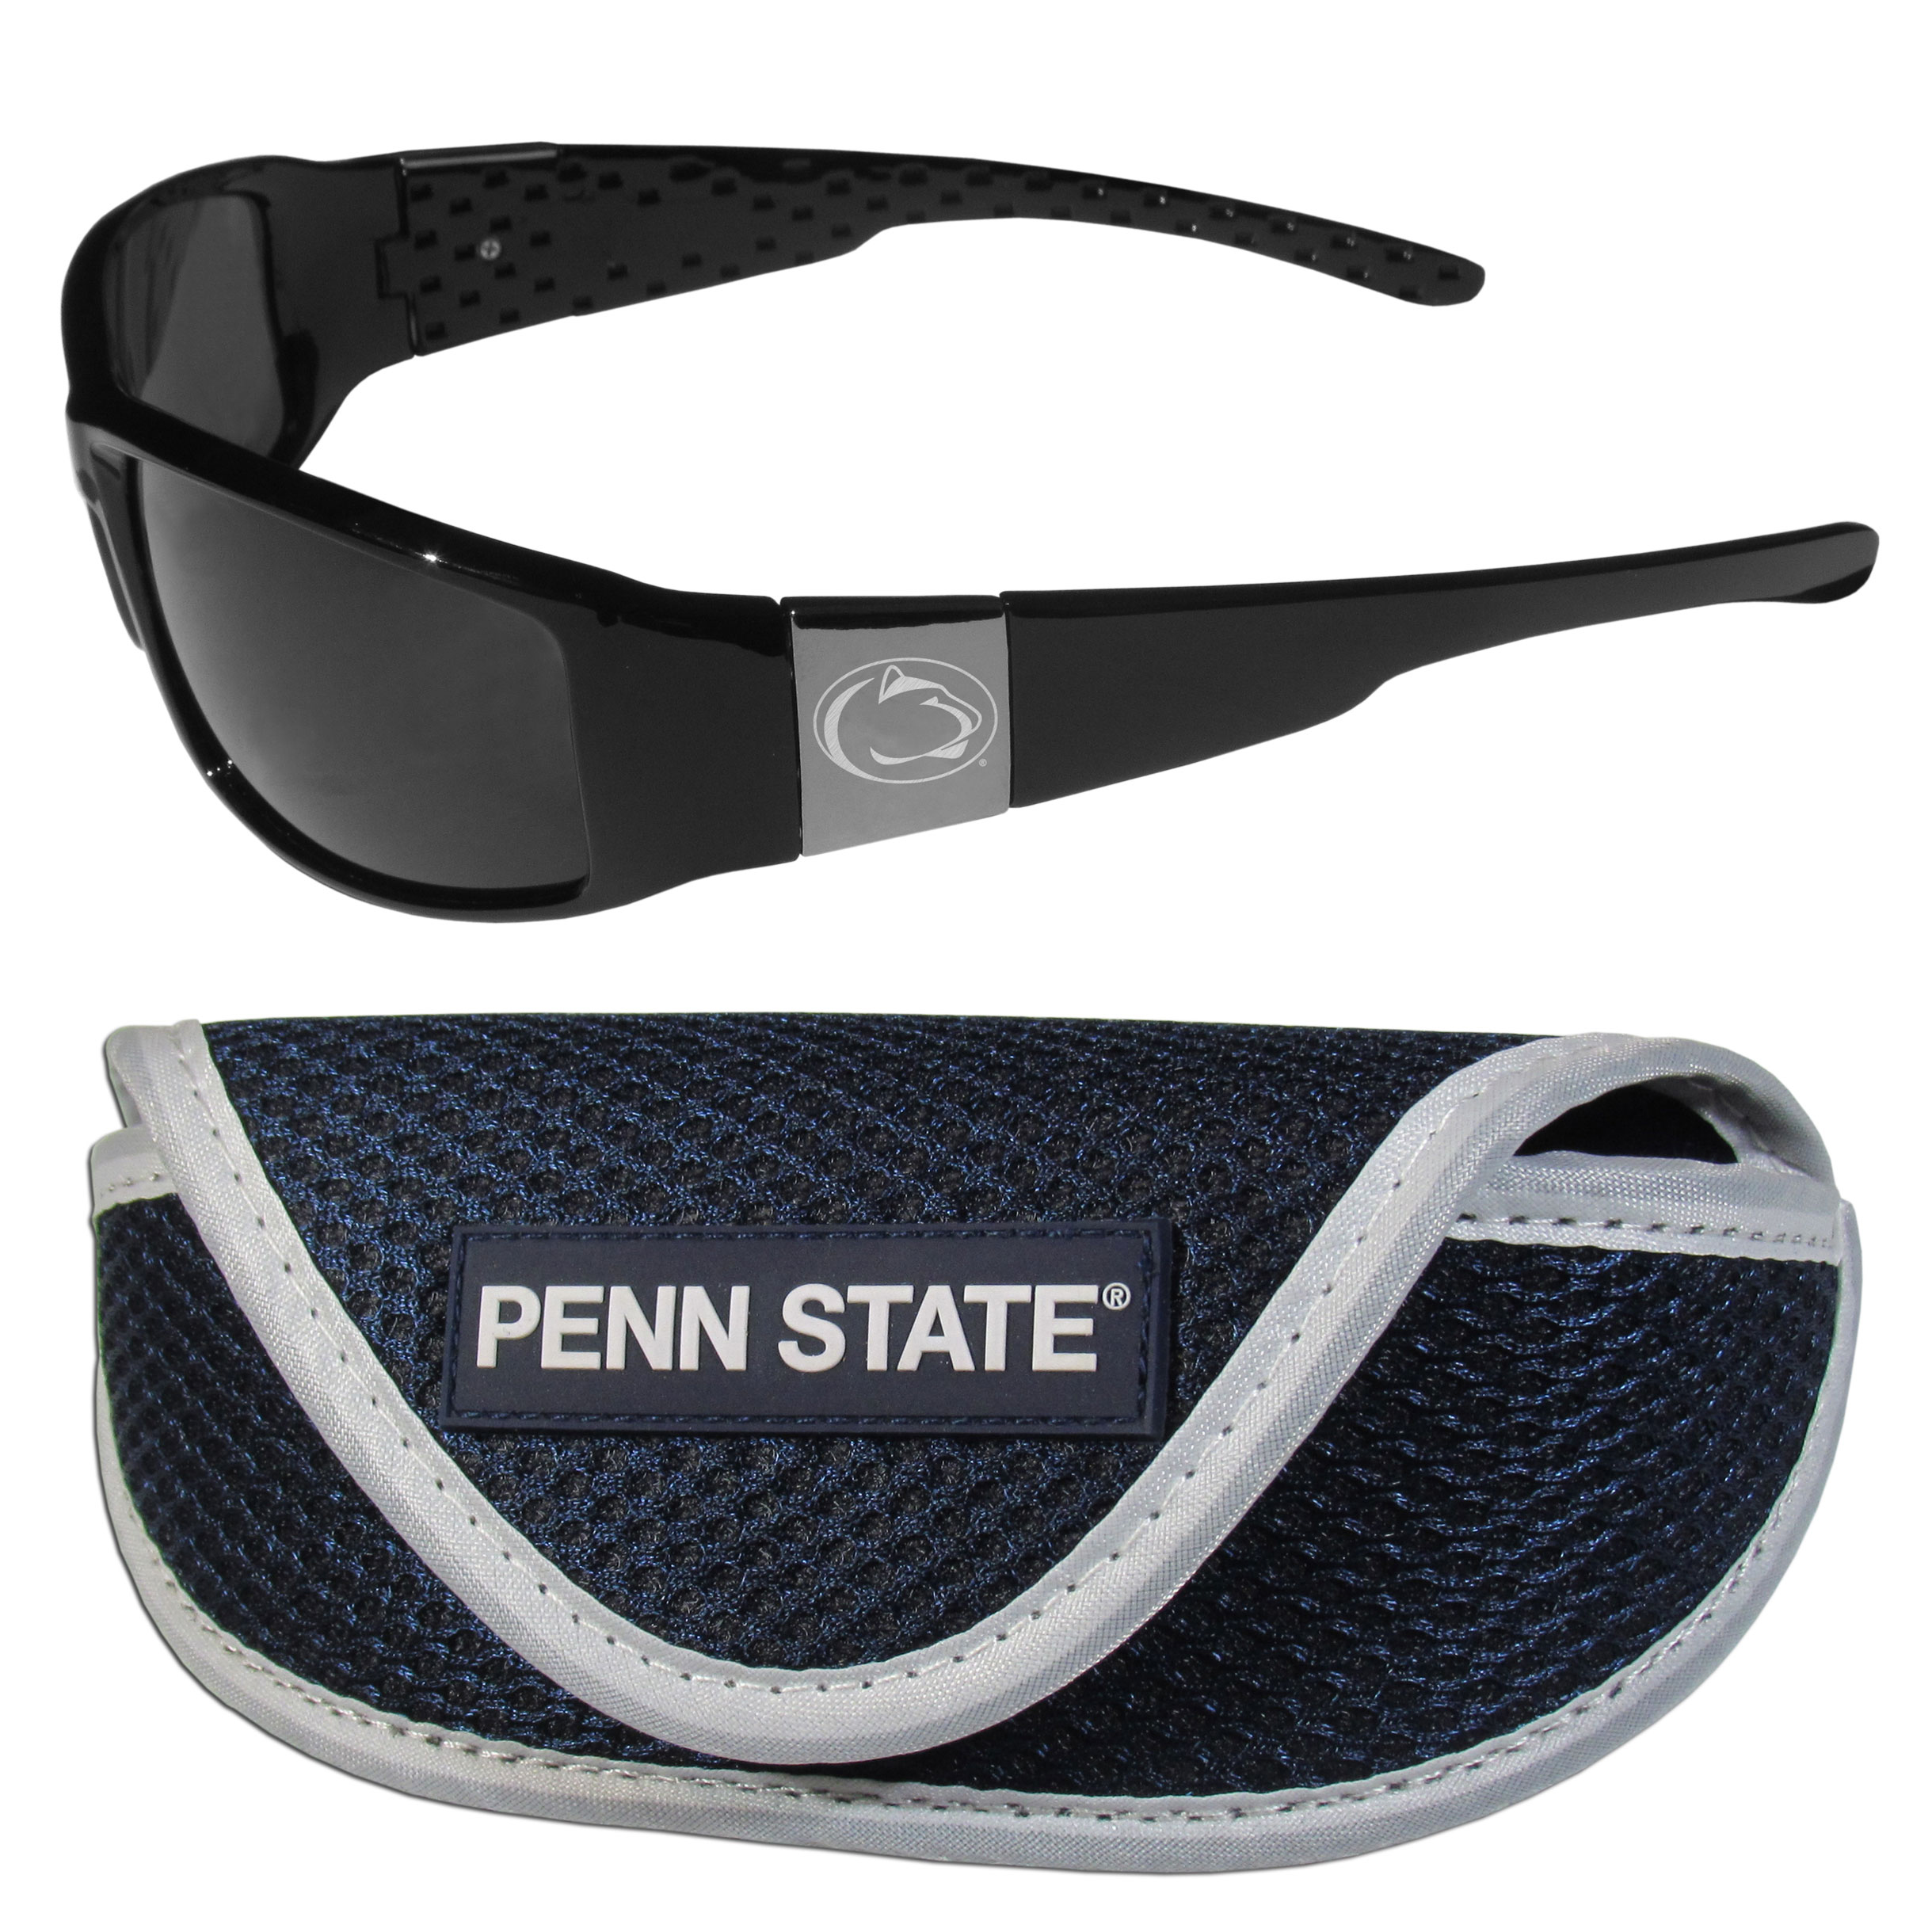 Penn St. Nittany Lions Chrome Wrap Sunglasses and Sport Carrying Case - These designer inspired frames have a sleek look in all black with high-polish chrome Penn St. Nittany Lions shields on each arm with an etched logo. The shades are perfect any outdoor activity like; golfing, driving, hiking, fishing or cheering on the team at a tailgating event or an at home game day BBQ with a lens rating of 100% UVA/UVB for maximum UV protection. The high-quality frames are as durable as they are fashionable and with their classic look they are perfect fan accessory that can be worn everyday for every occasion. The shades come with a zippered hard shell case to keep your sunglasses safe.